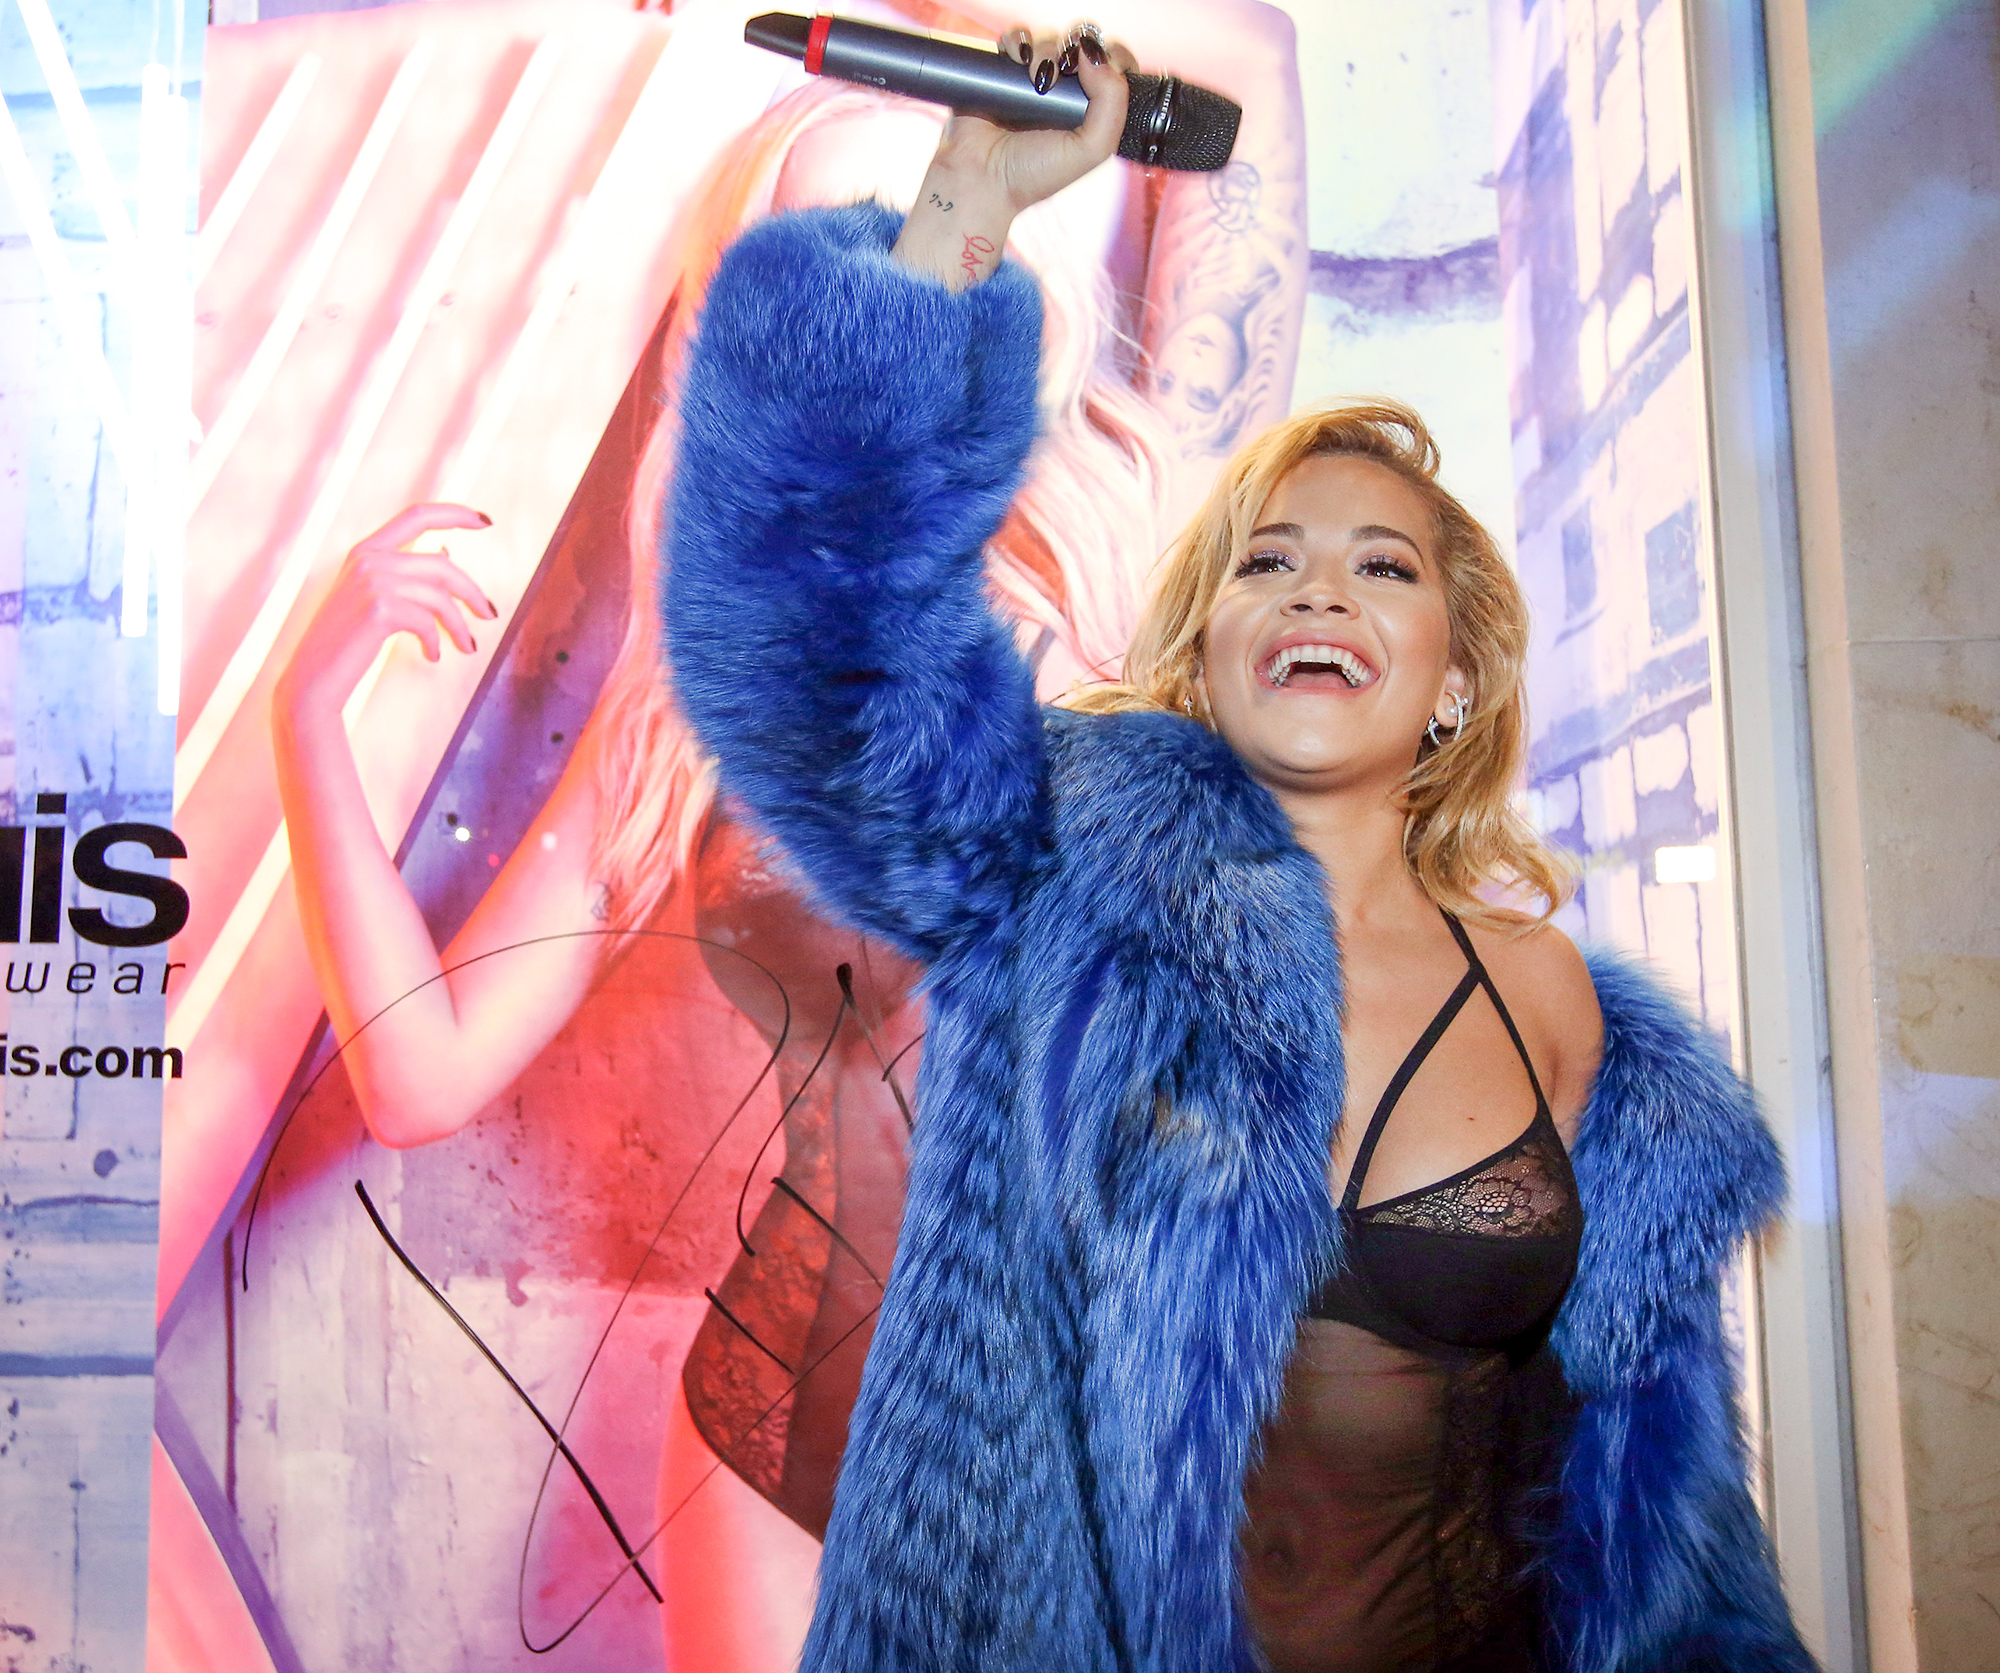 British singer Rita Ora performs live during the presentacion of her lingerie collection in Lisbon